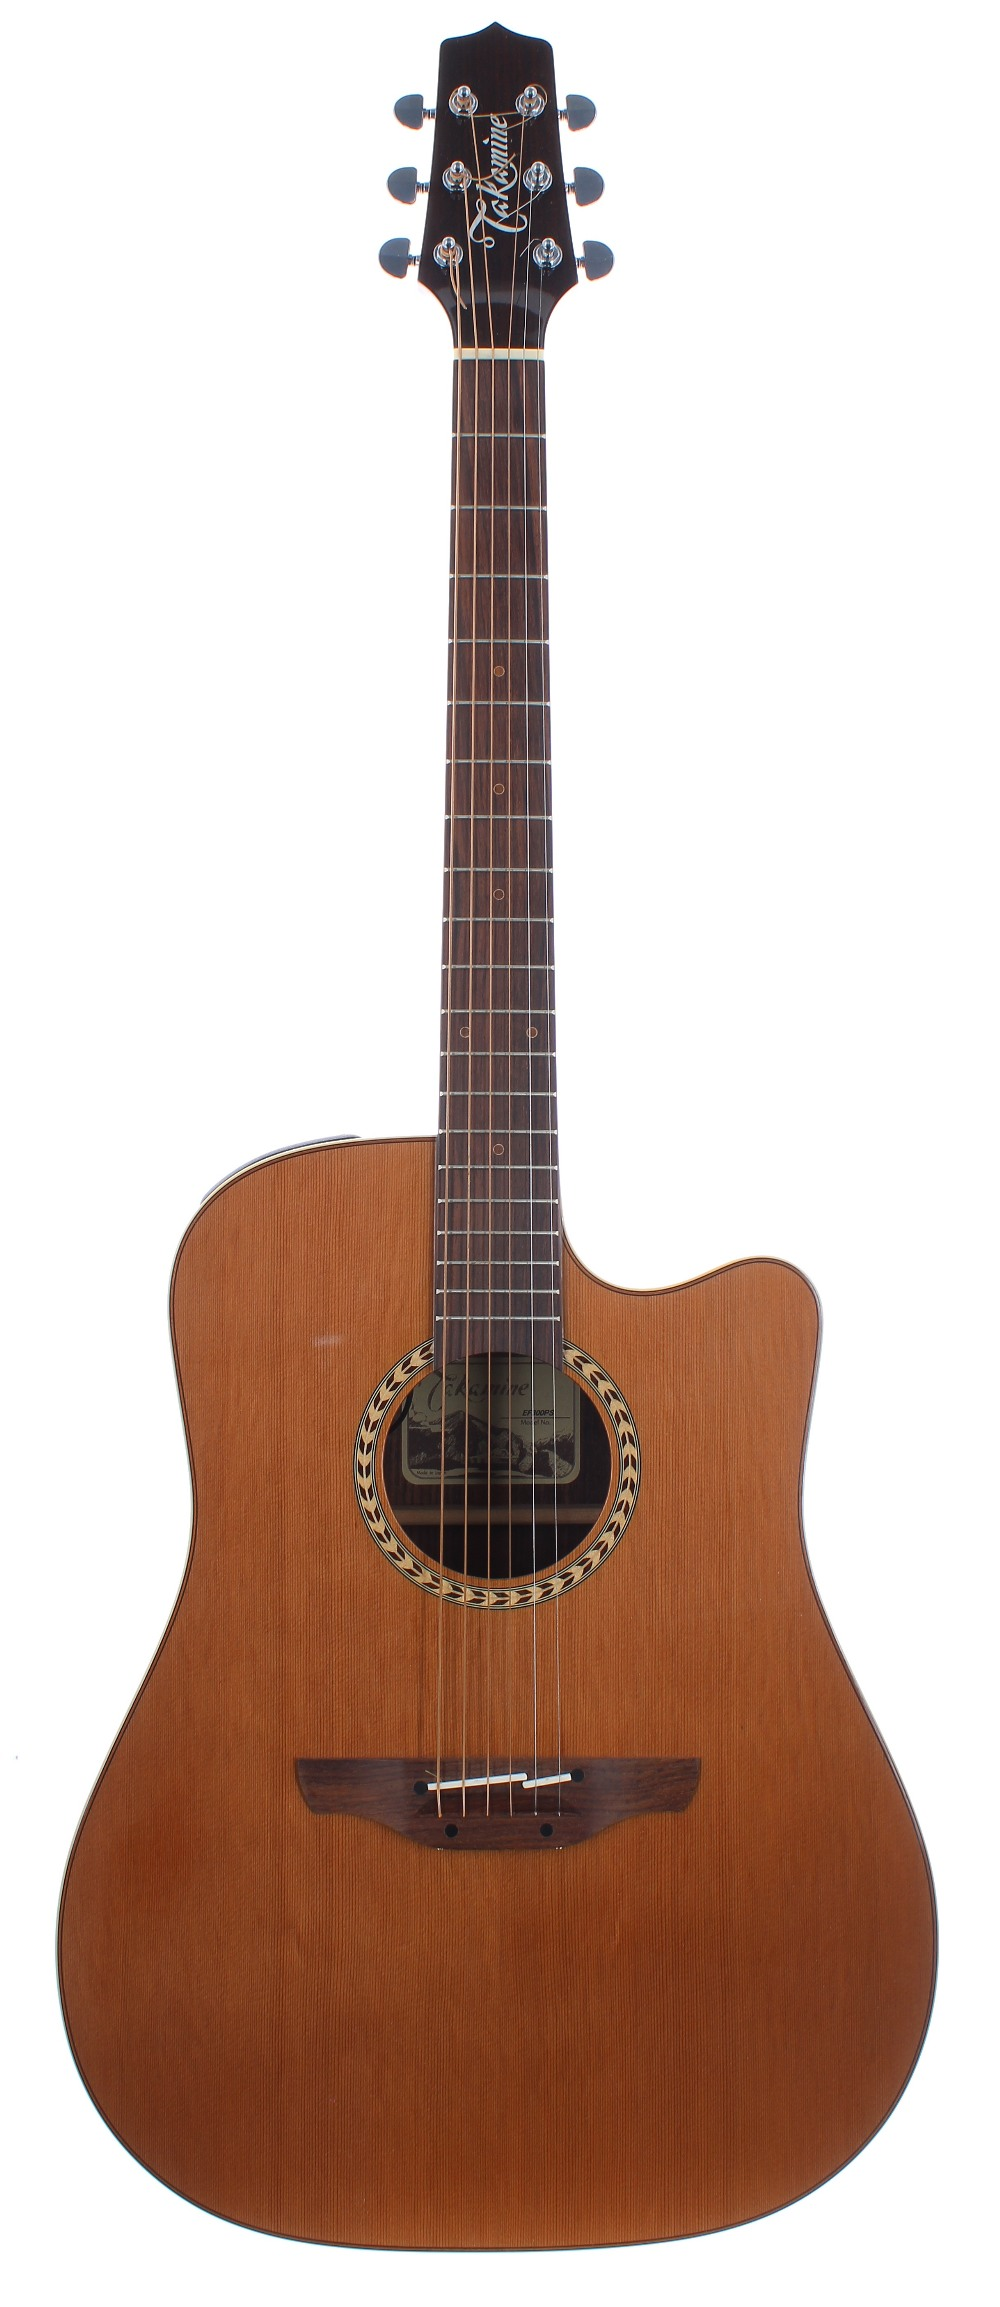 Takamine EF300PS electro-acoustic guitar, made in Japan, ser. no. 09xxxxx8; Back and sides: